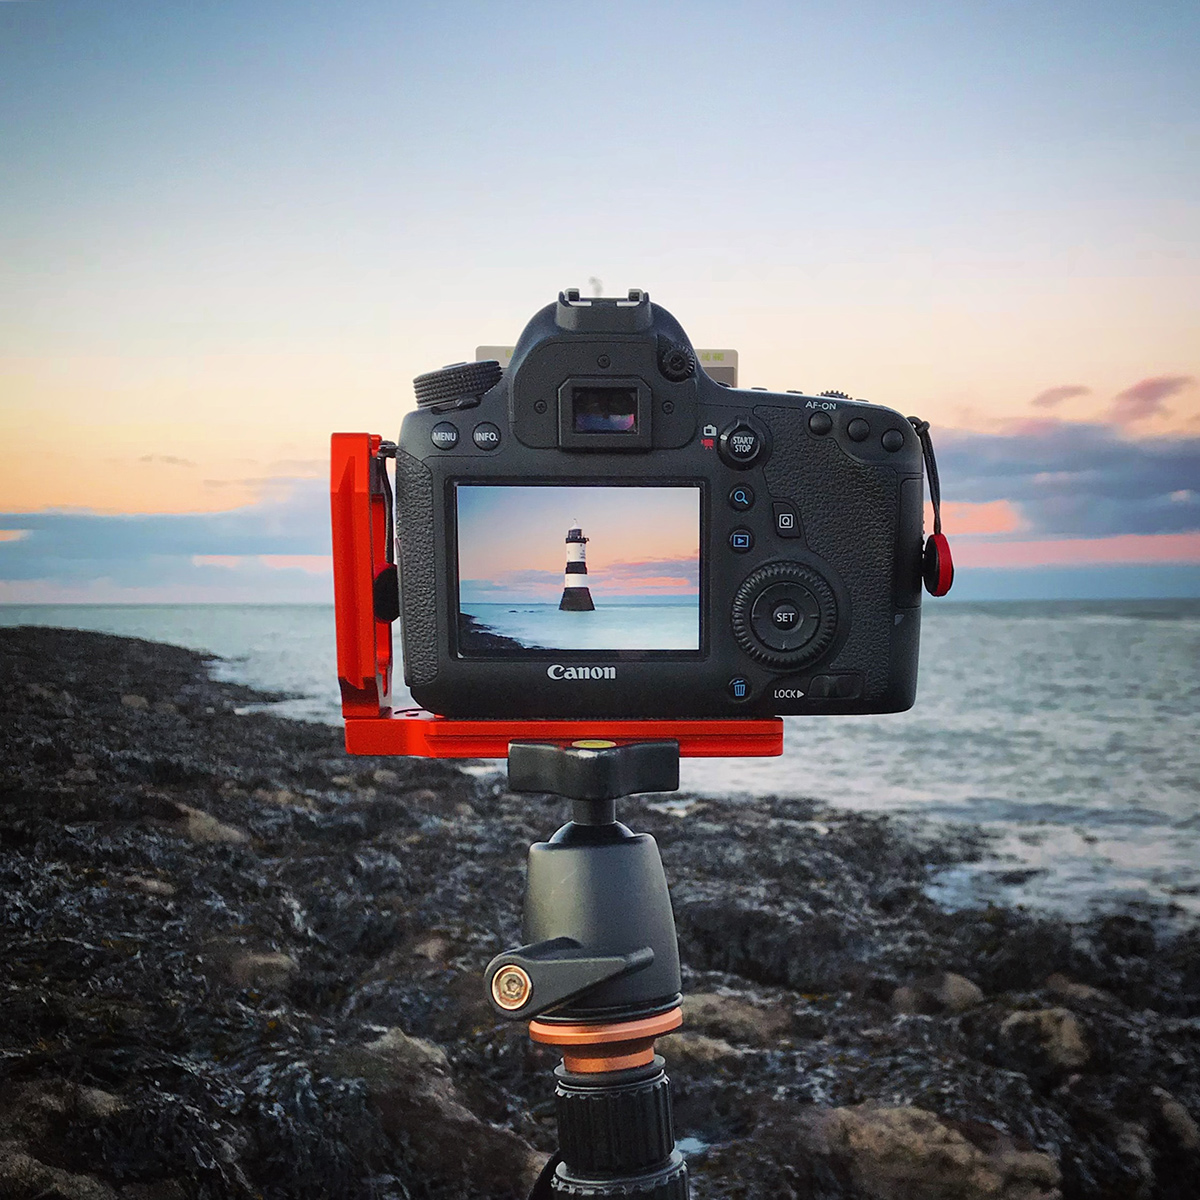 Sunset Photography: How To Set Your Camera